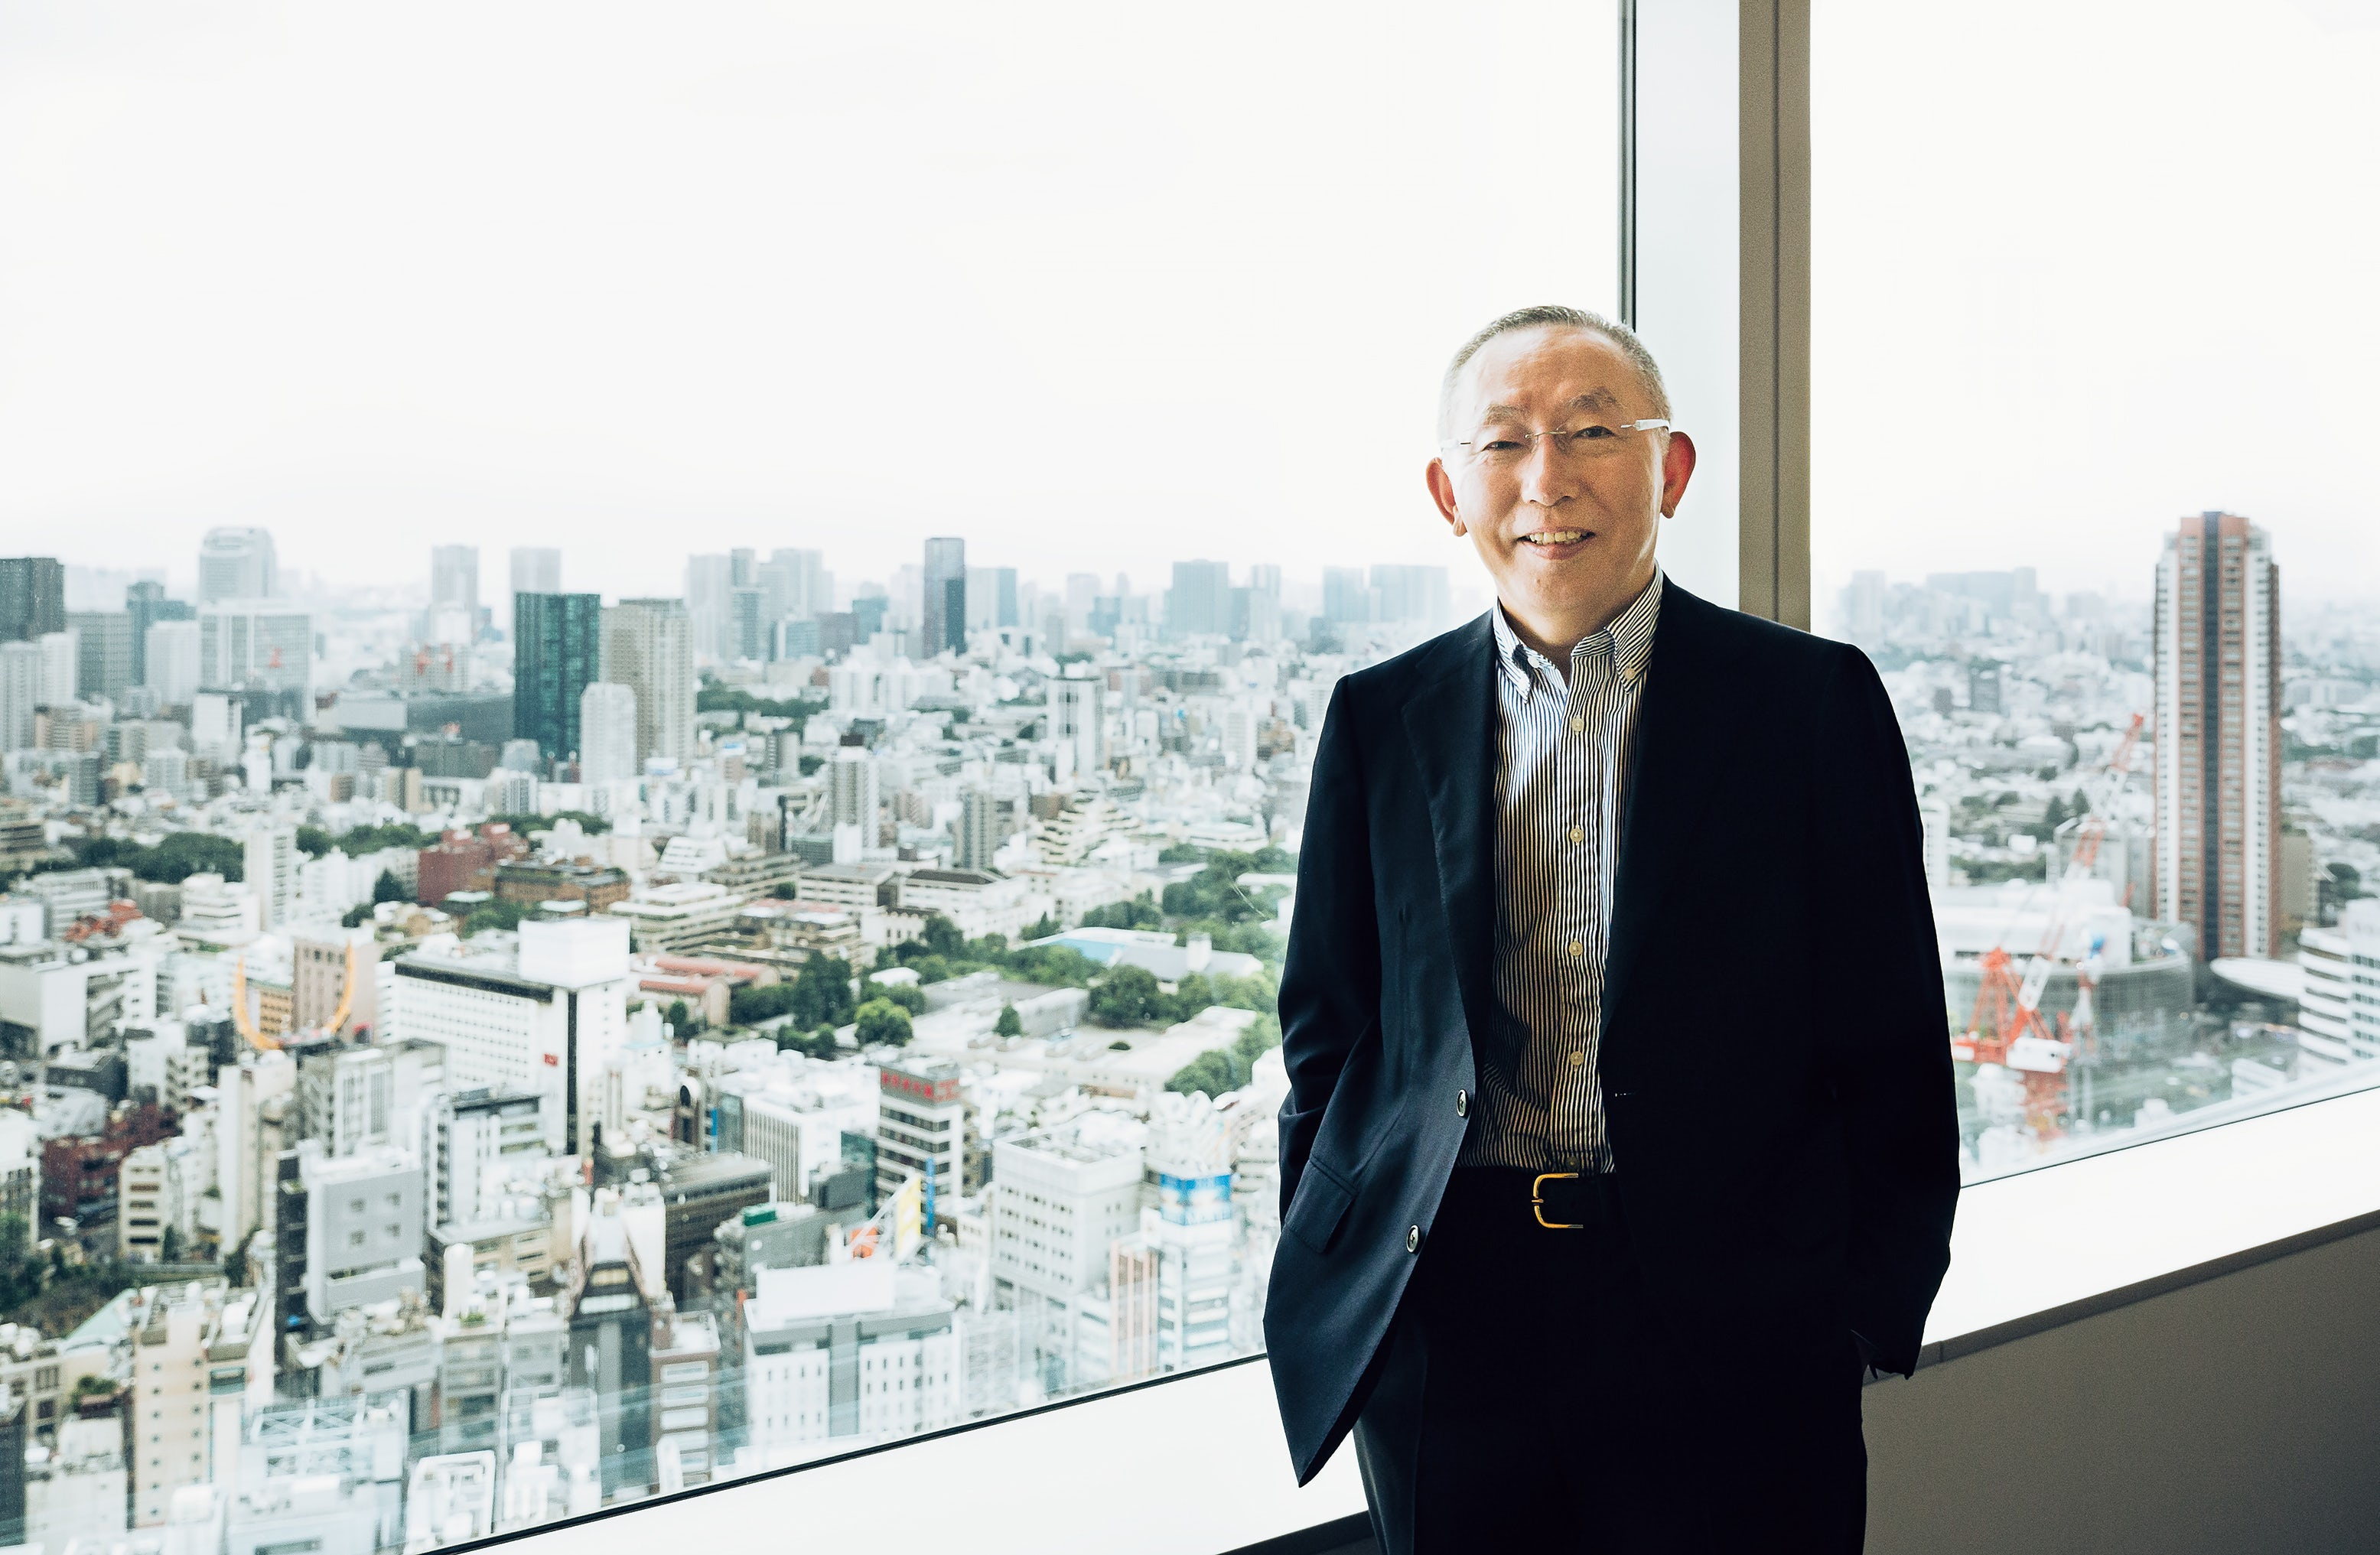 Uniqlo founder Tadashi Yanai at the company's global headquarters in the Tokyo Midtown Tower | Photo: Nik van der Giesen for BoF